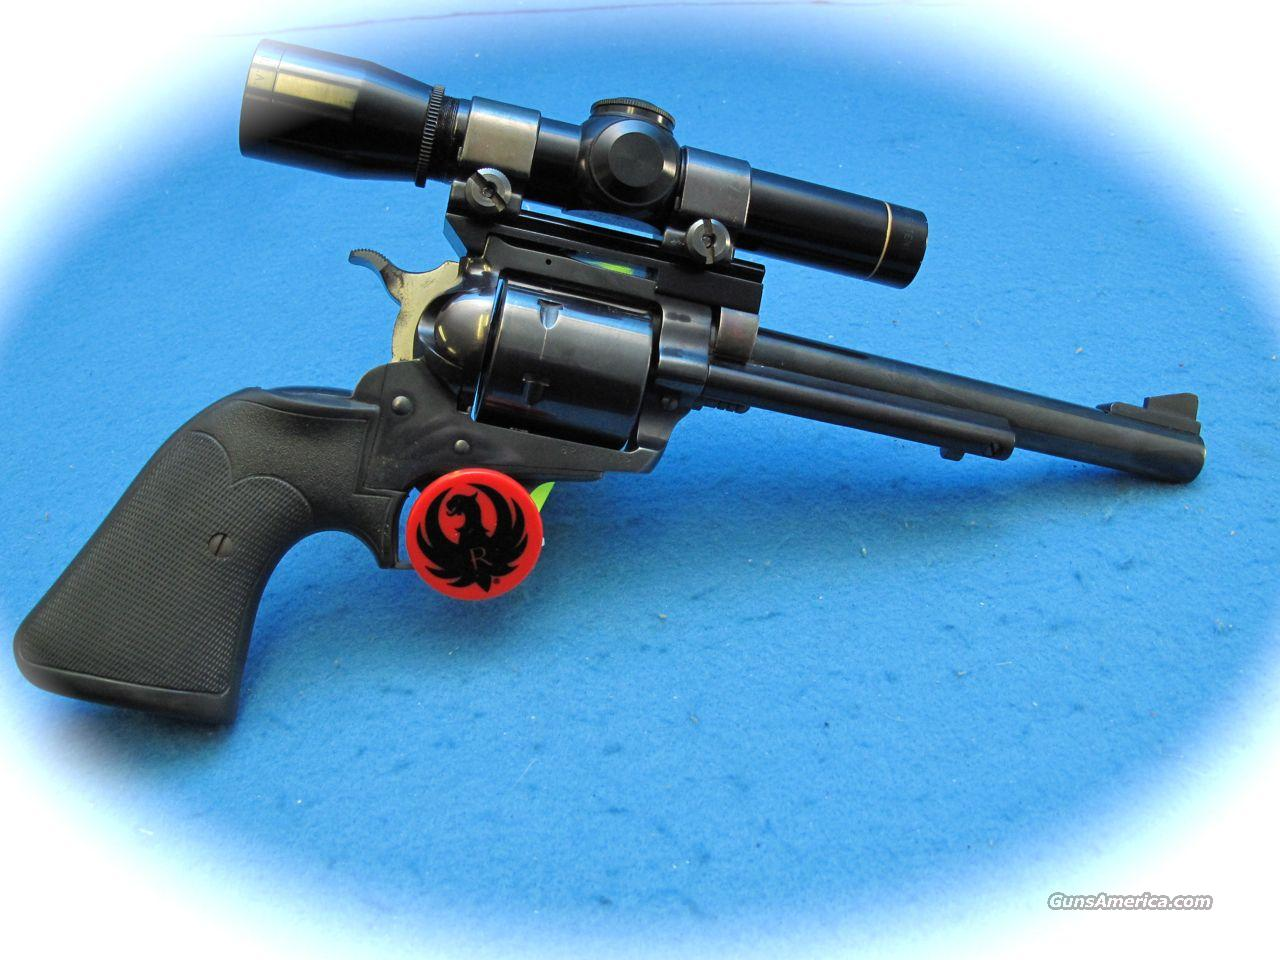 Ruger Super Blackhawk 44 Mag W/ Leupold Scope **Used**  Guns > Pistols > Ruger Single Action Revolvers > Blackhawk Type